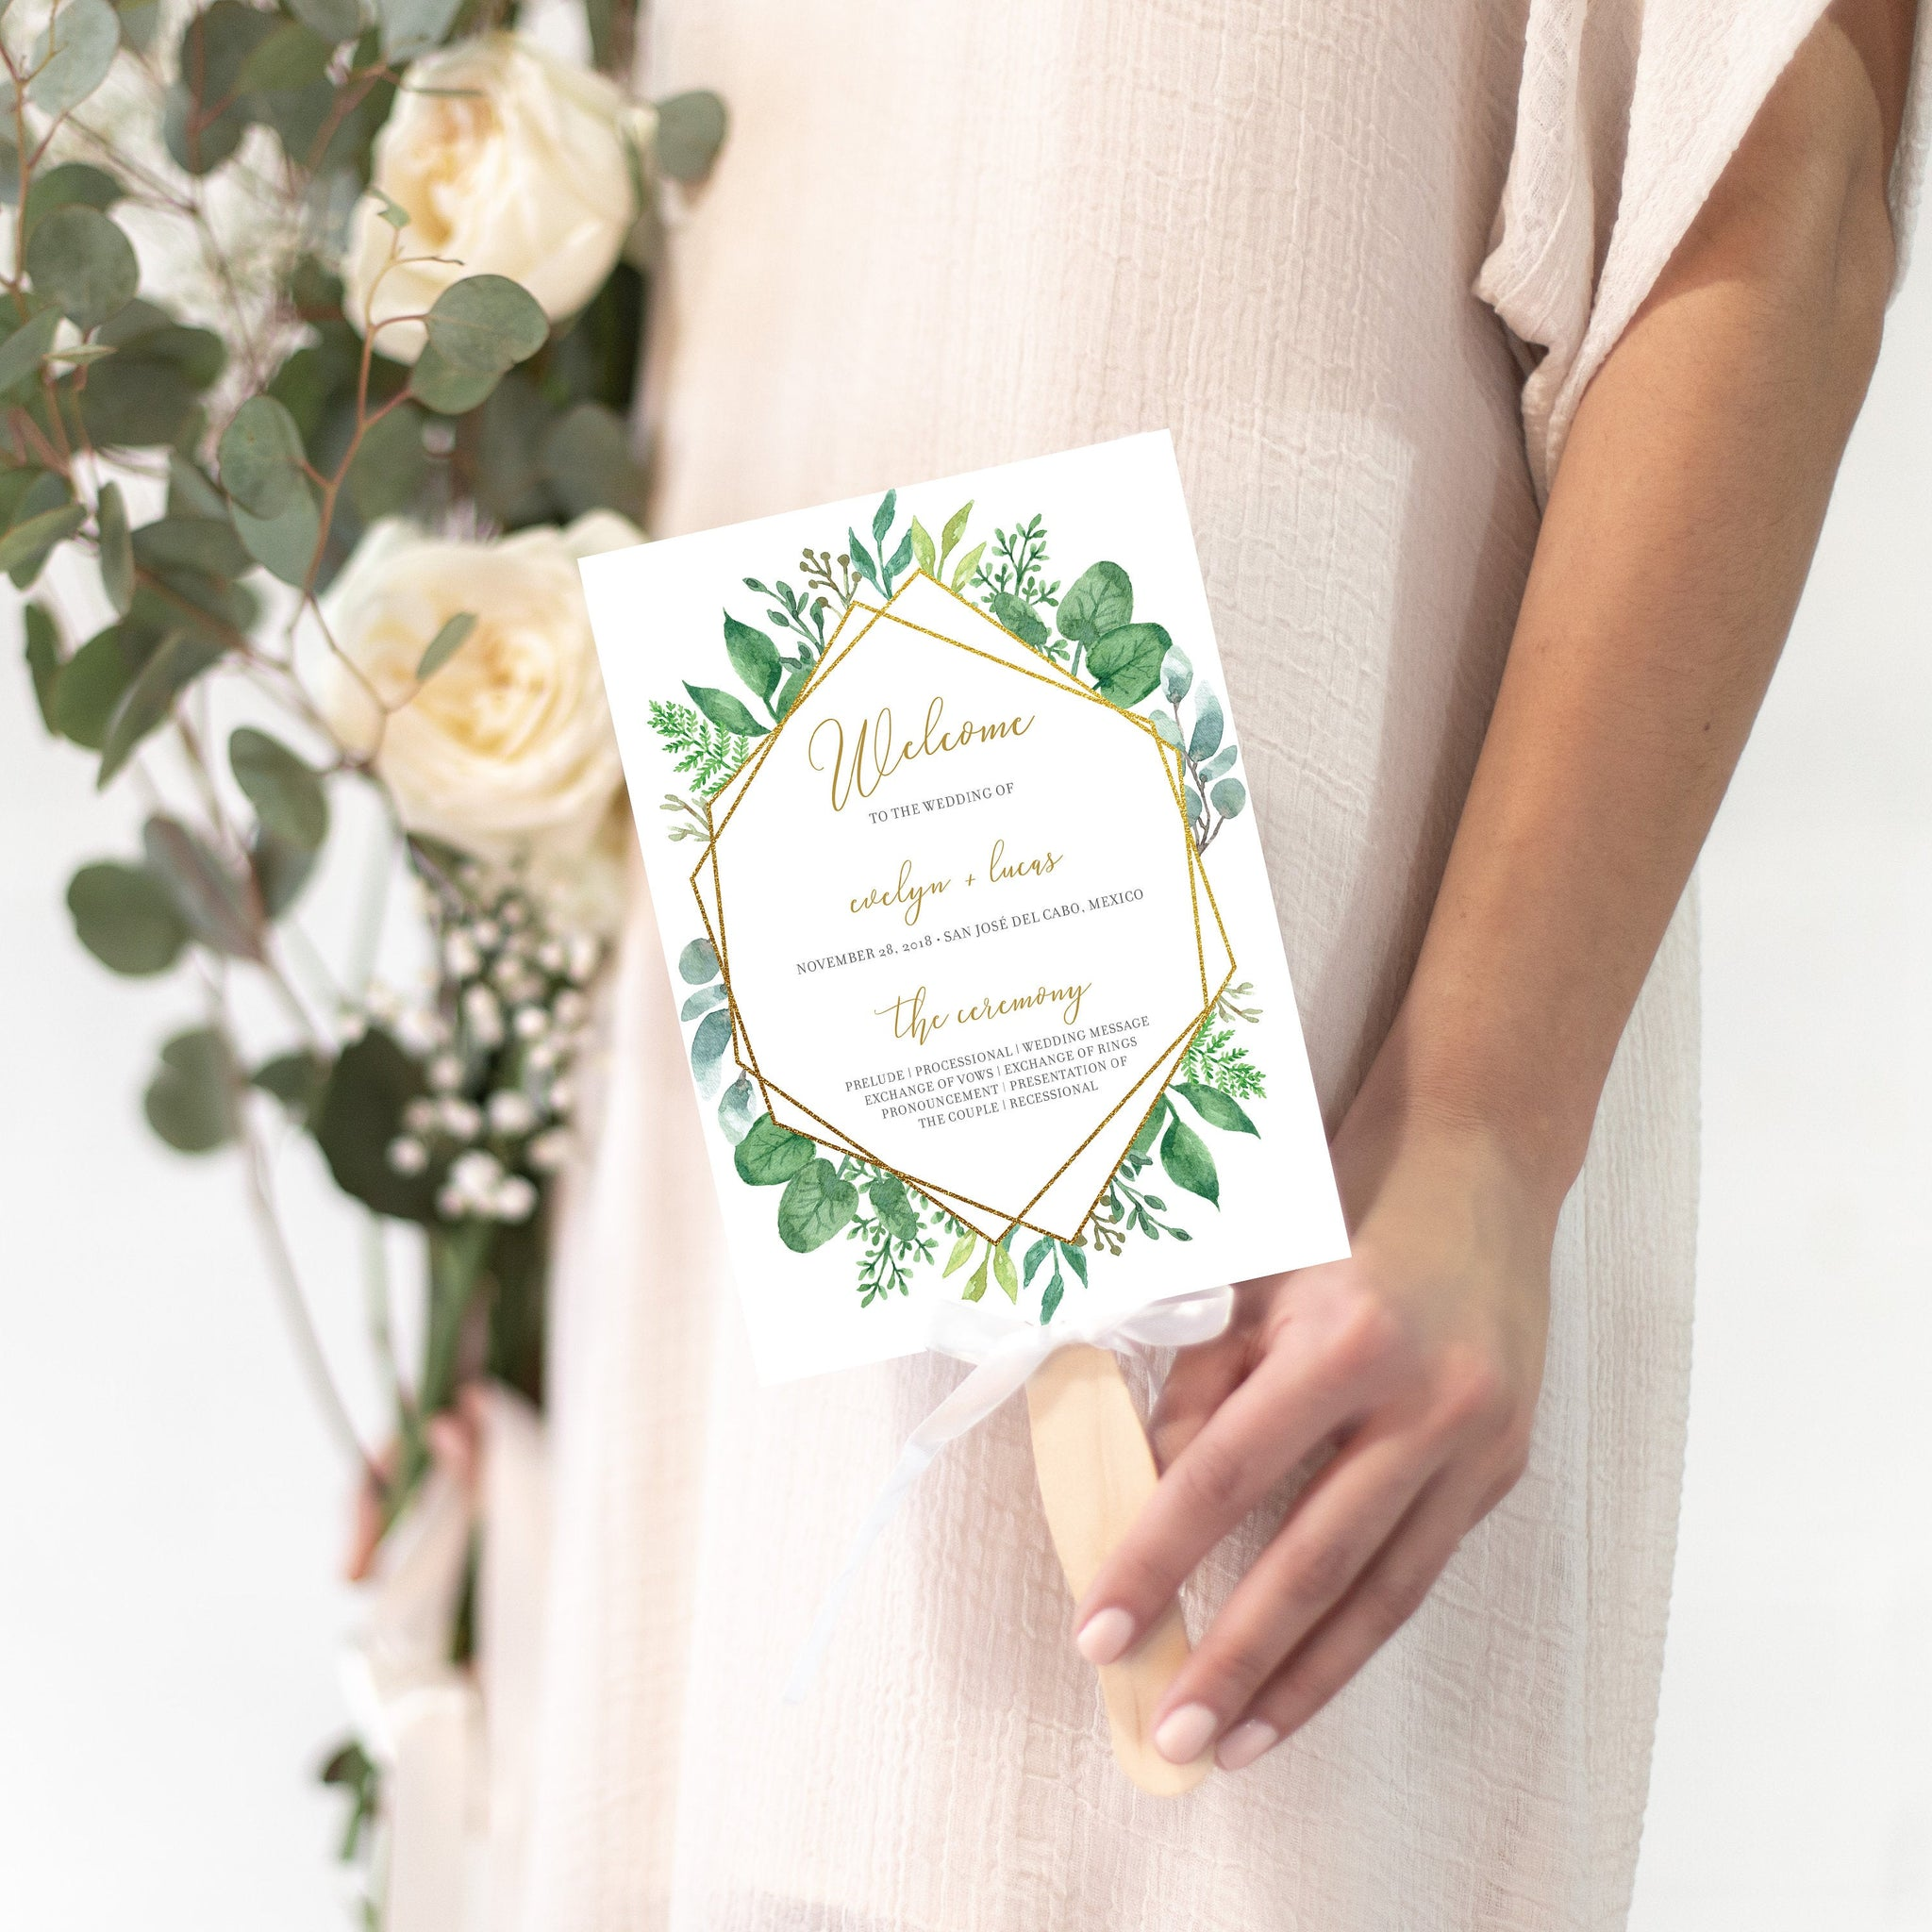 Greenery Wedding Ceremony Program Template, Wedding Programs Greenery, Editable Wedding Program, 5x7 DIGITAL DOWNLOAD - GFG100 - @PlumPolkaDot